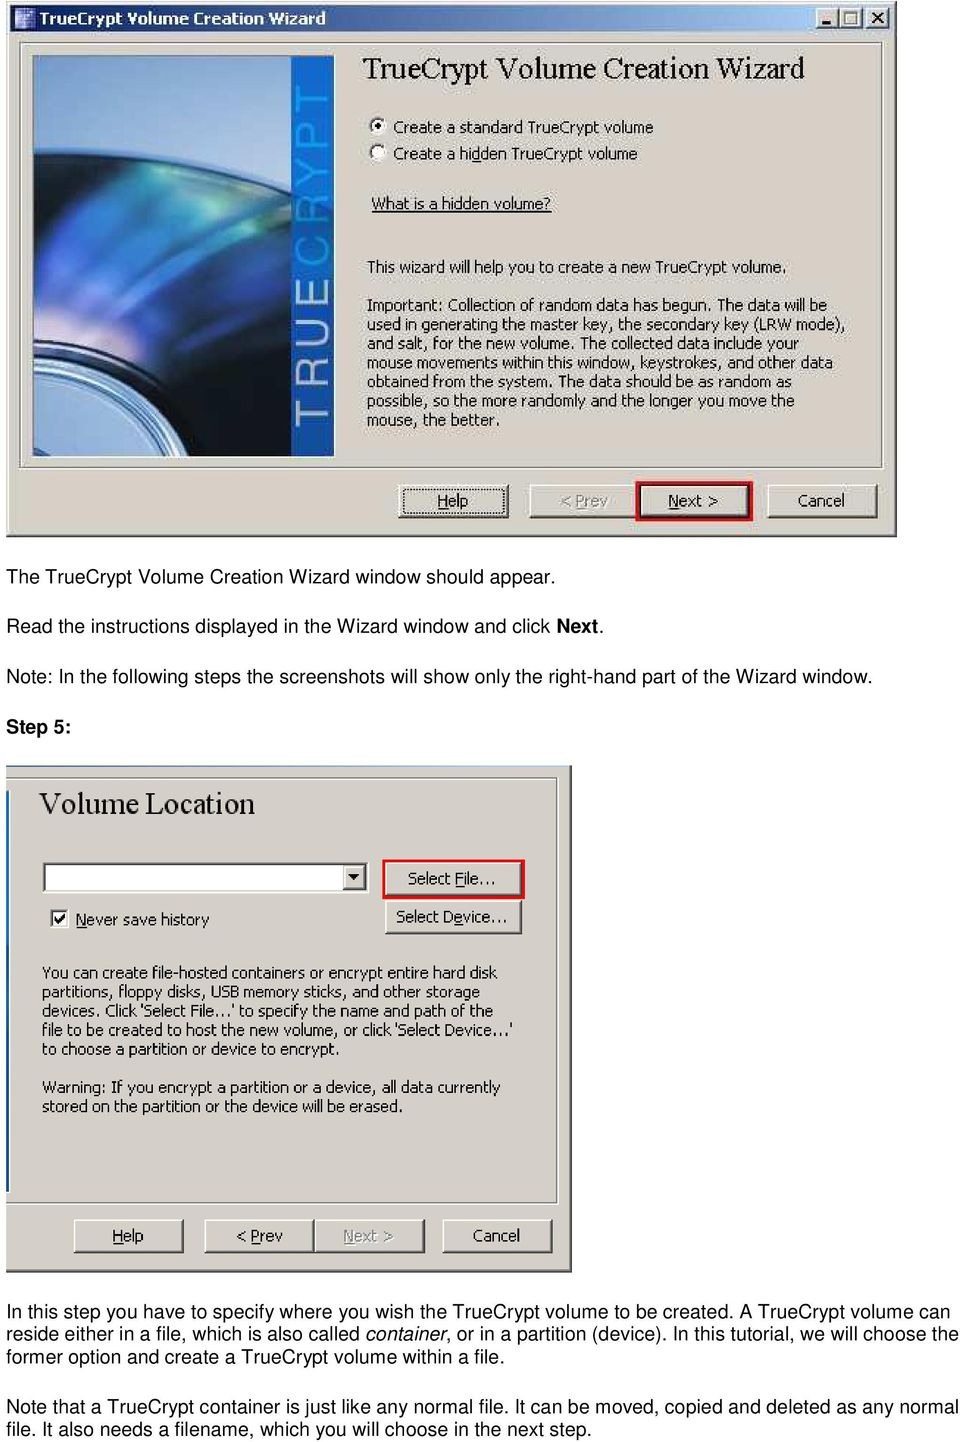 Step 5: In this step you have to specify where you wish the TrueCrypt volume to be created.